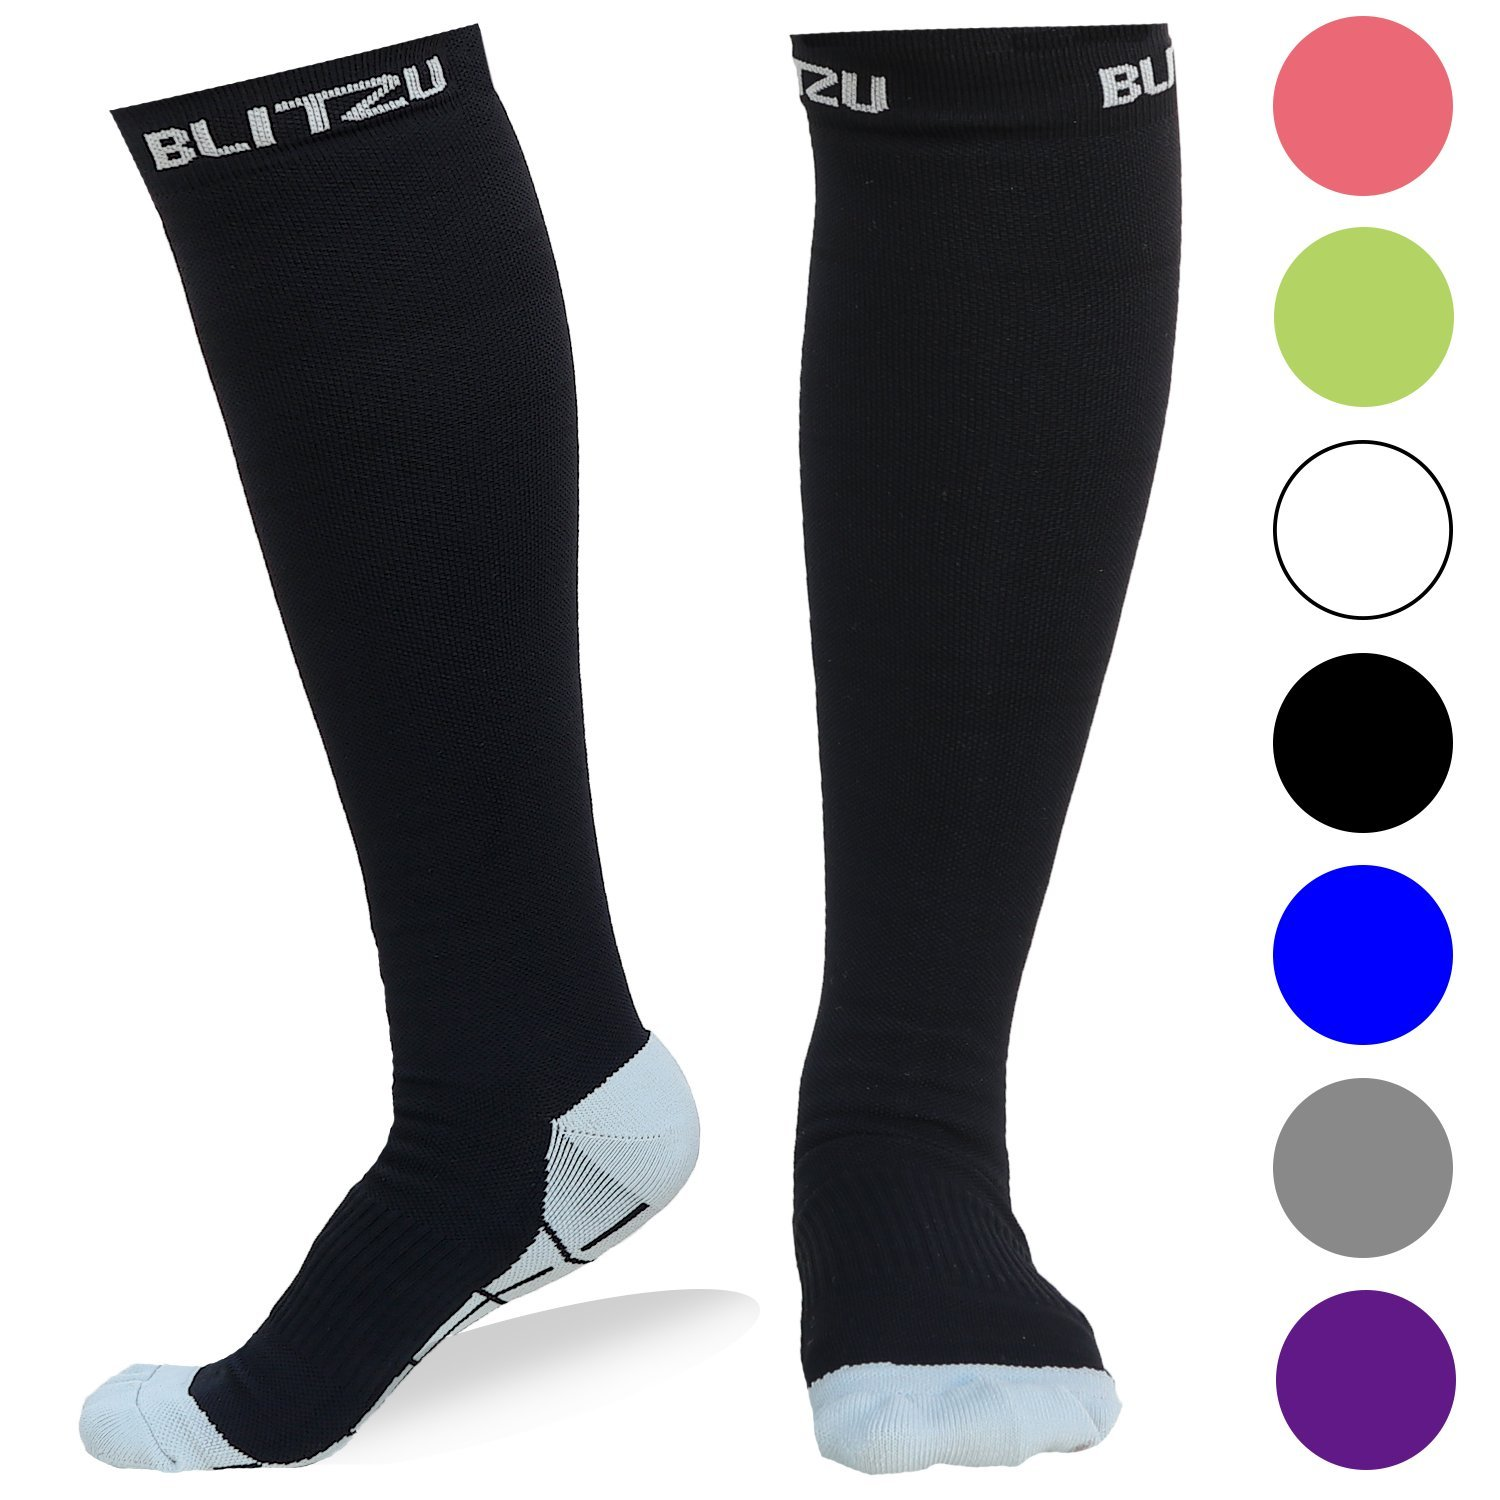 6924b0979 BLITZU Compression Socks 20-30mmHg for Men & Women Best Recovery  Performance Stockings for Running, Medical, Athletic, Edema, Diabetic,  Varicose Veins, ...